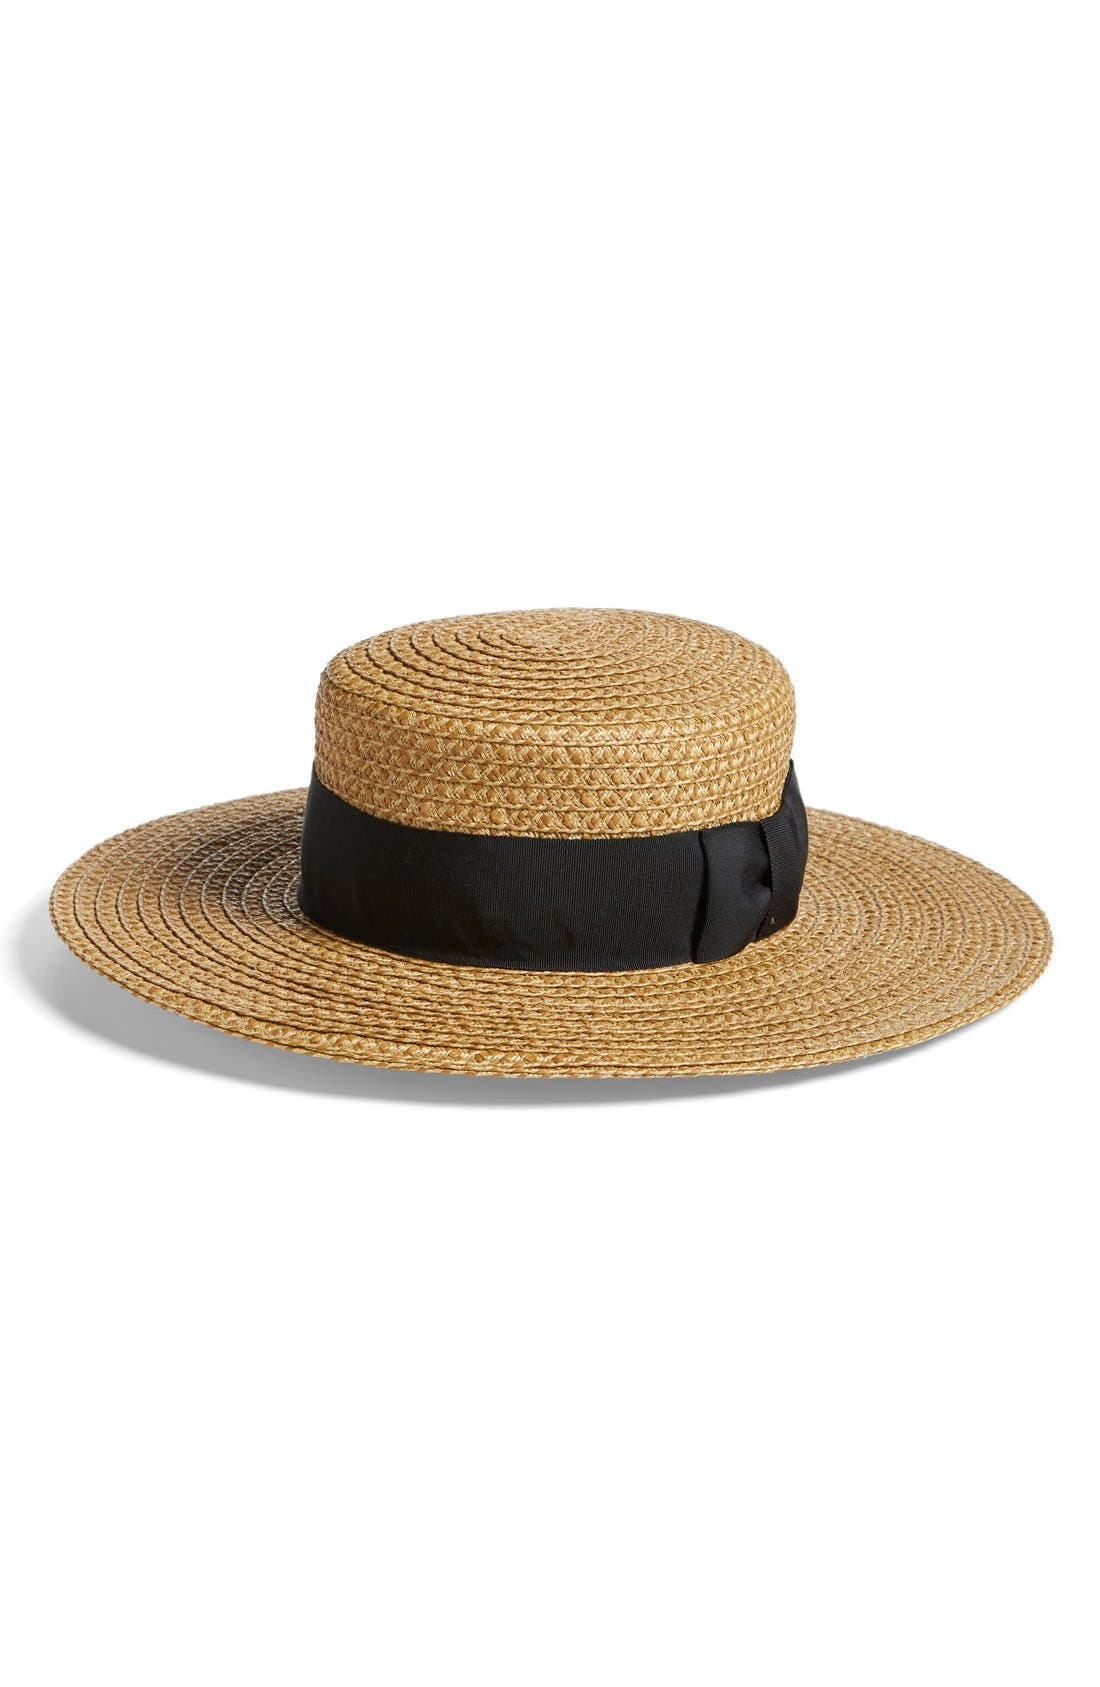 Alternate Image 1 Selected - Eric Javits 'Gondolier' Boater Hat